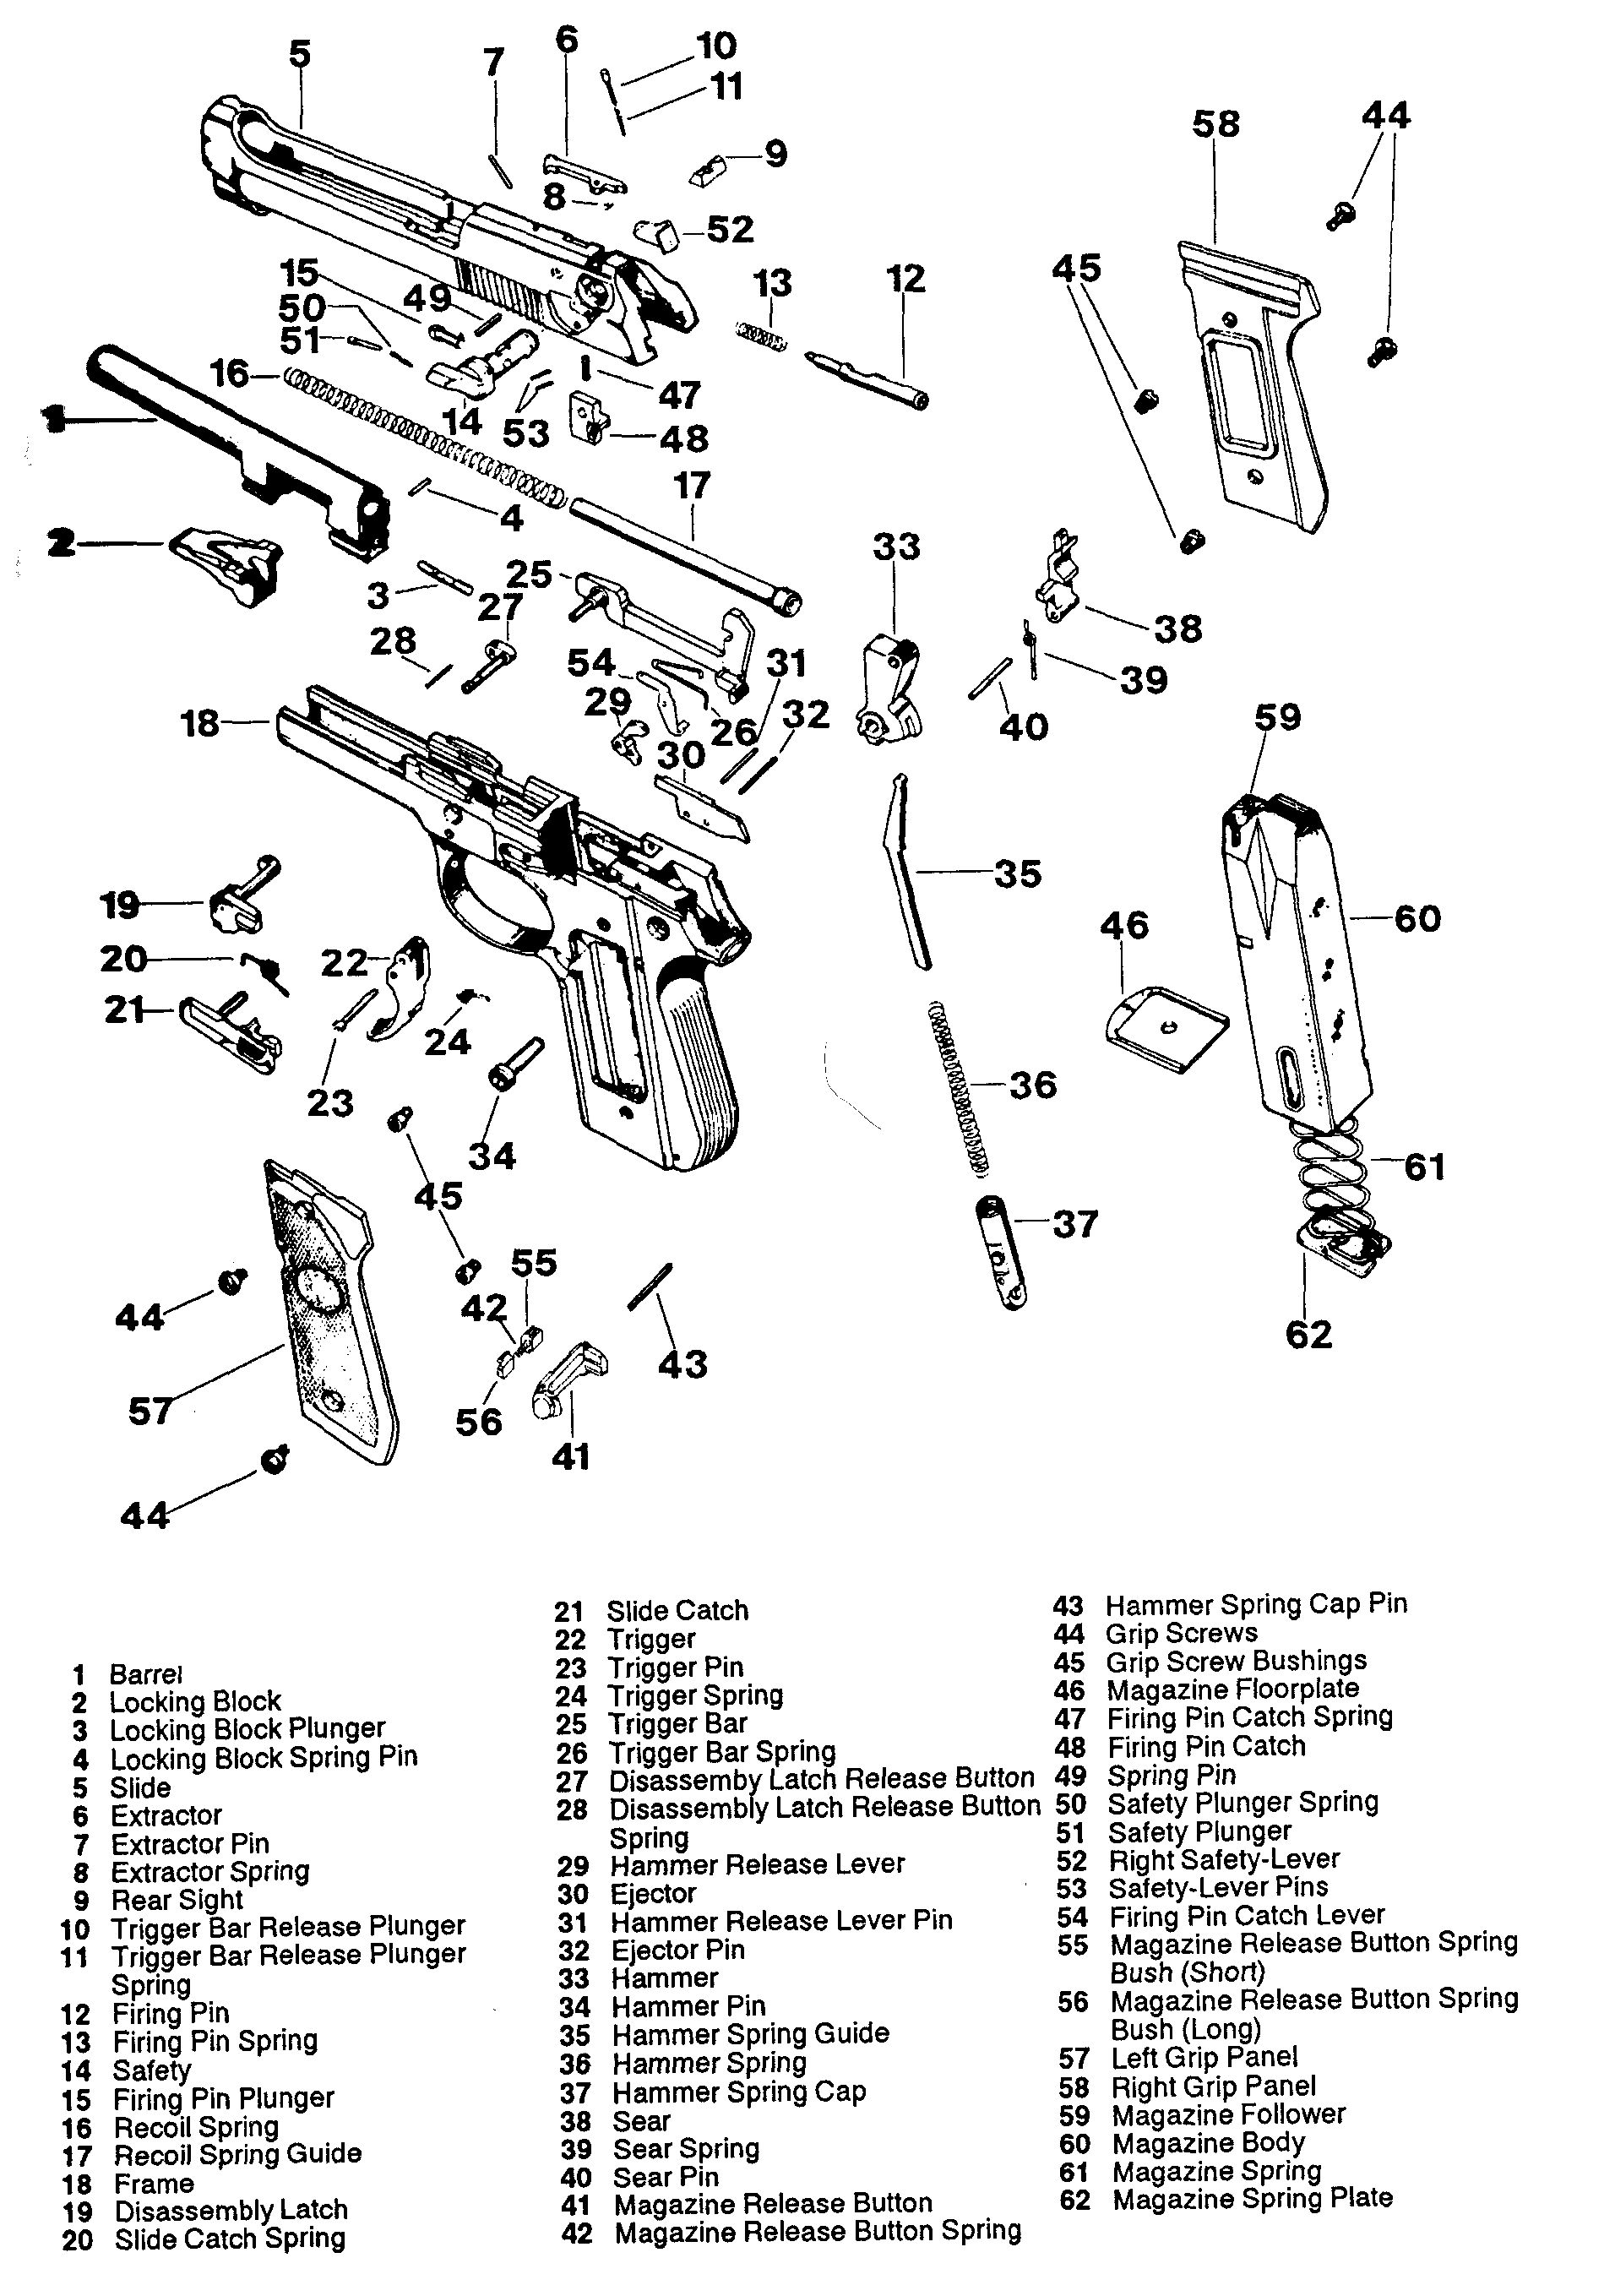 Beretta 92fs Exploded View